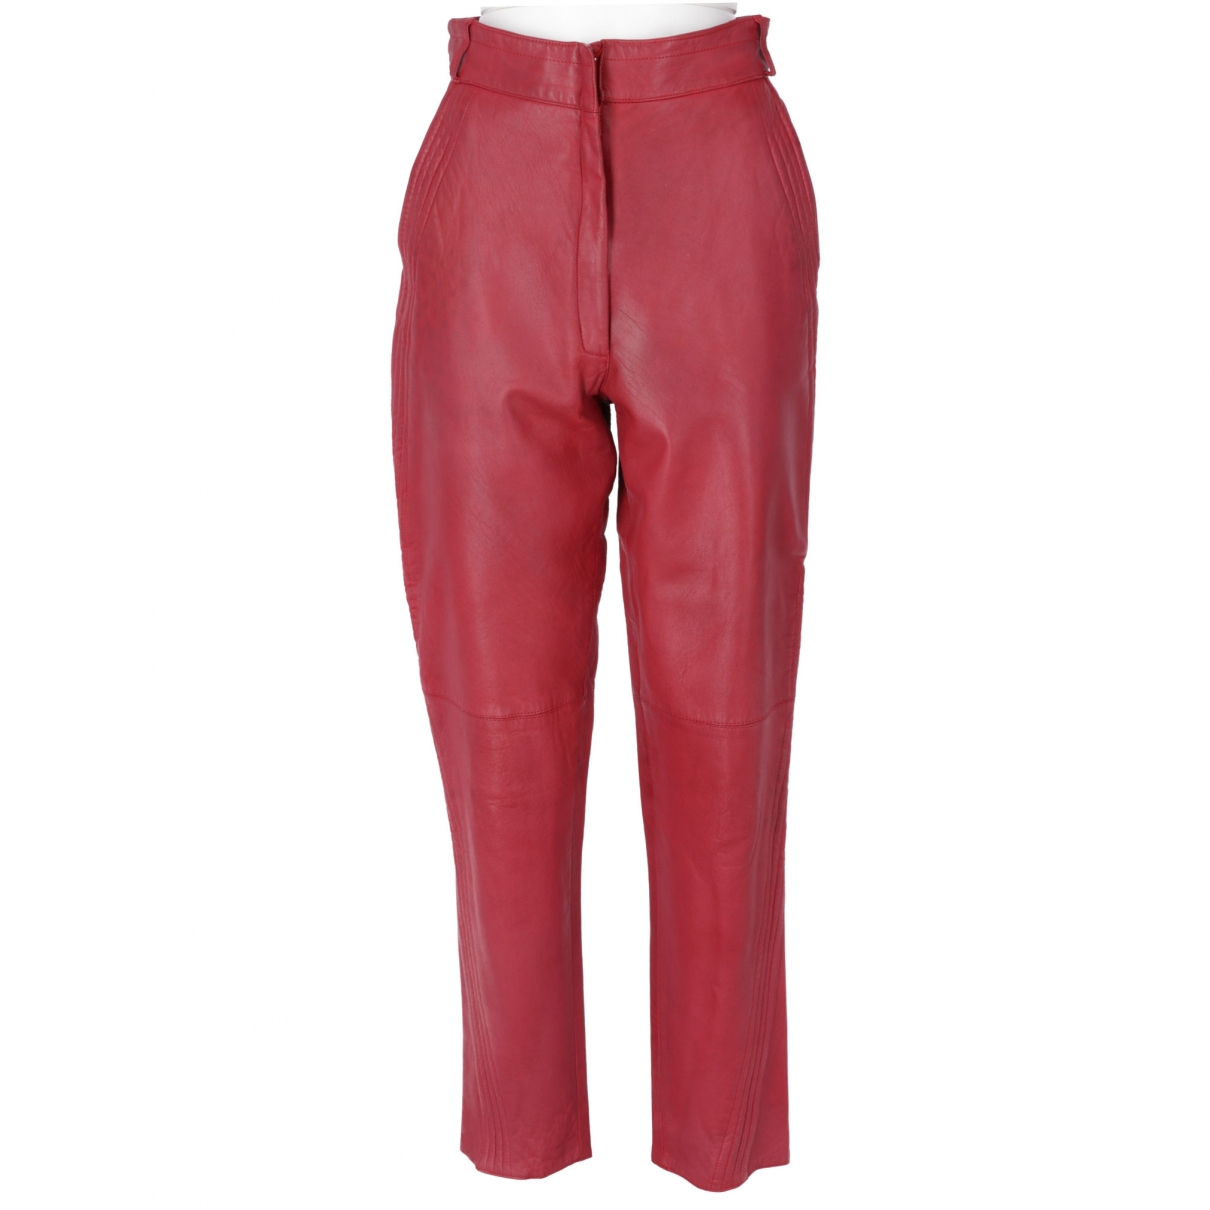 Gianni Versace \N Red Leather Trousers for Women 42 IT